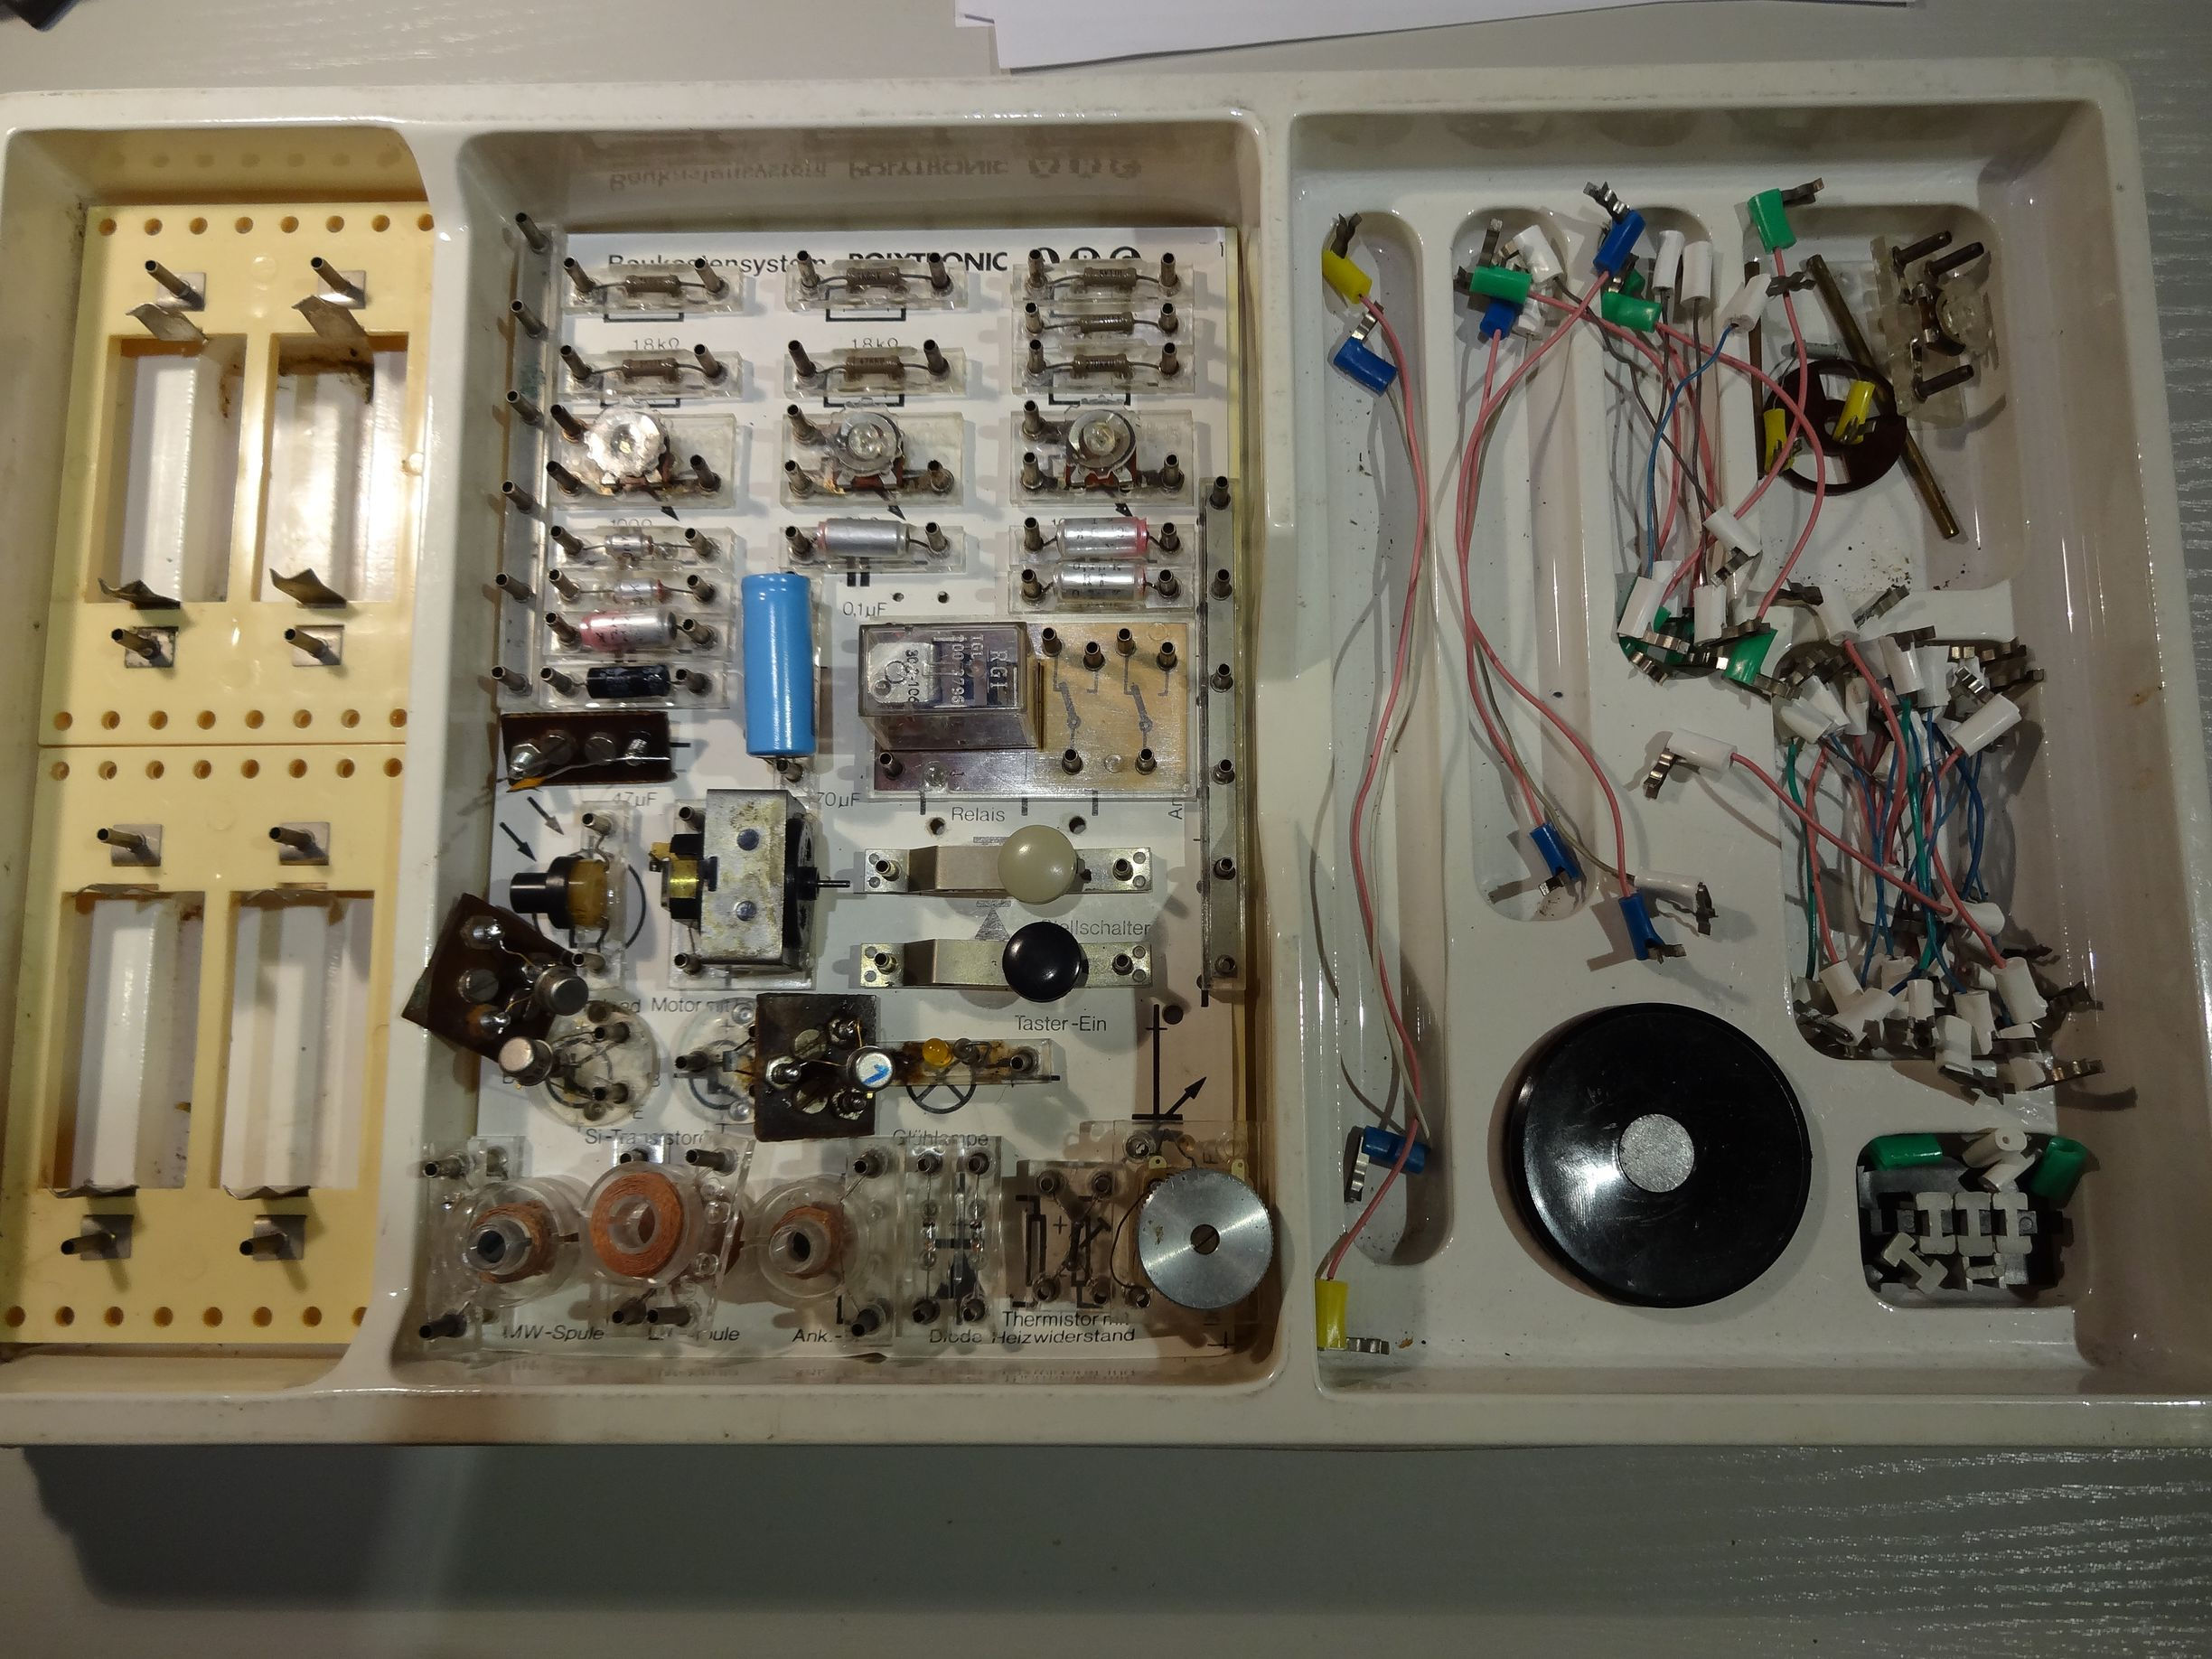 Selfclue Old Memories Electronics Kit And A New Contest Electronic Circuit Kits For Schools The Cables